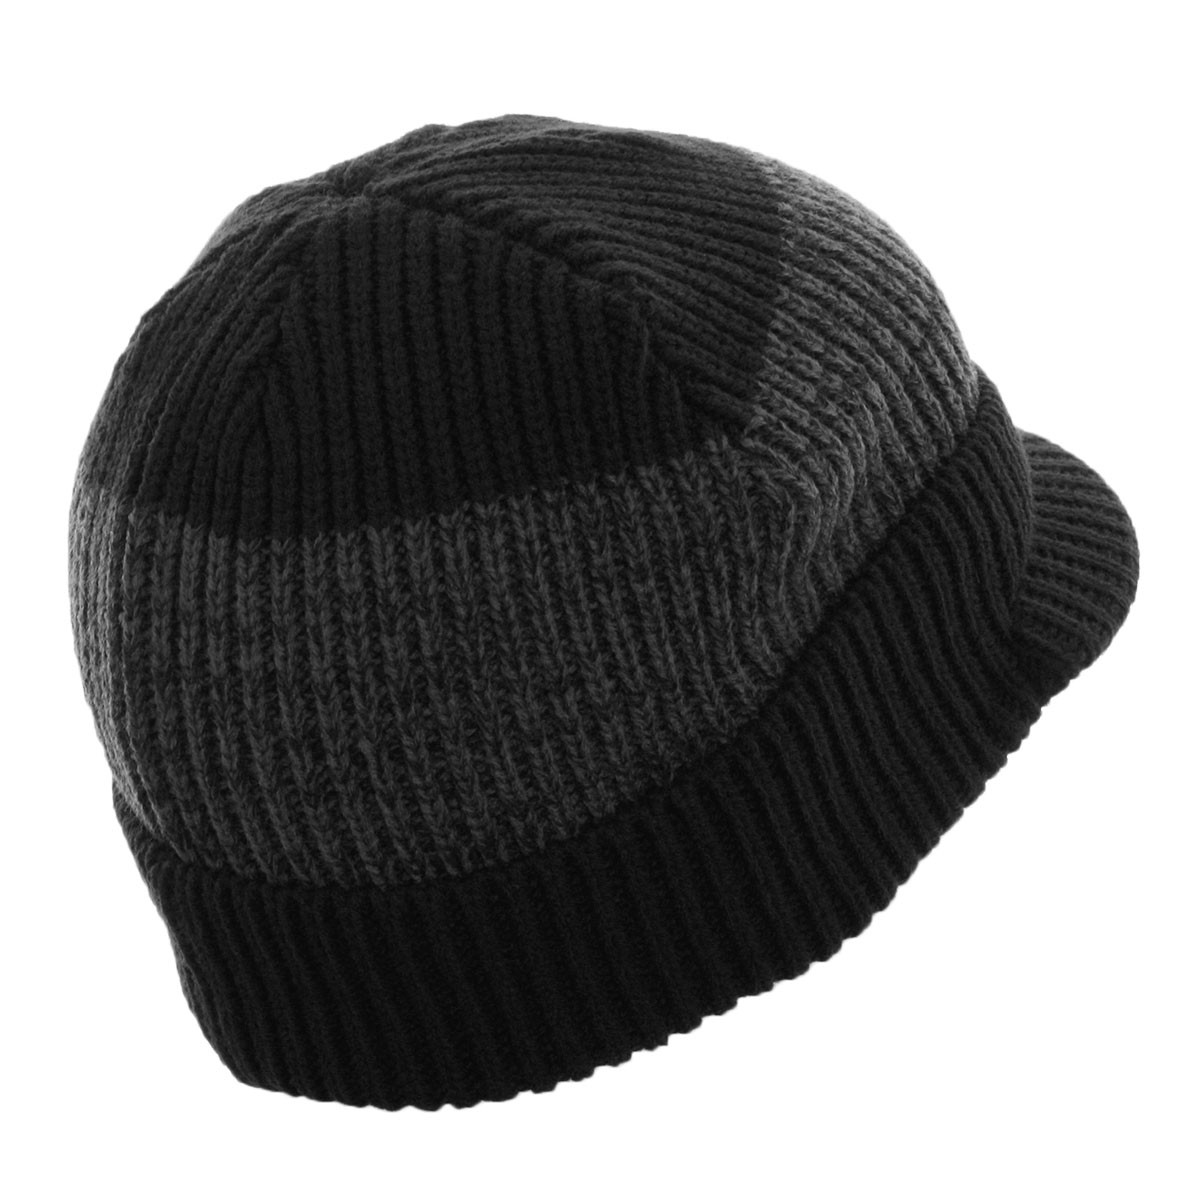 Mens Winter Hats Fresh Mizuno Golf 2016 Mens Peaked Beanie Winter Wooly Hat Cap Of Great 48 Images Mens Winter Hats